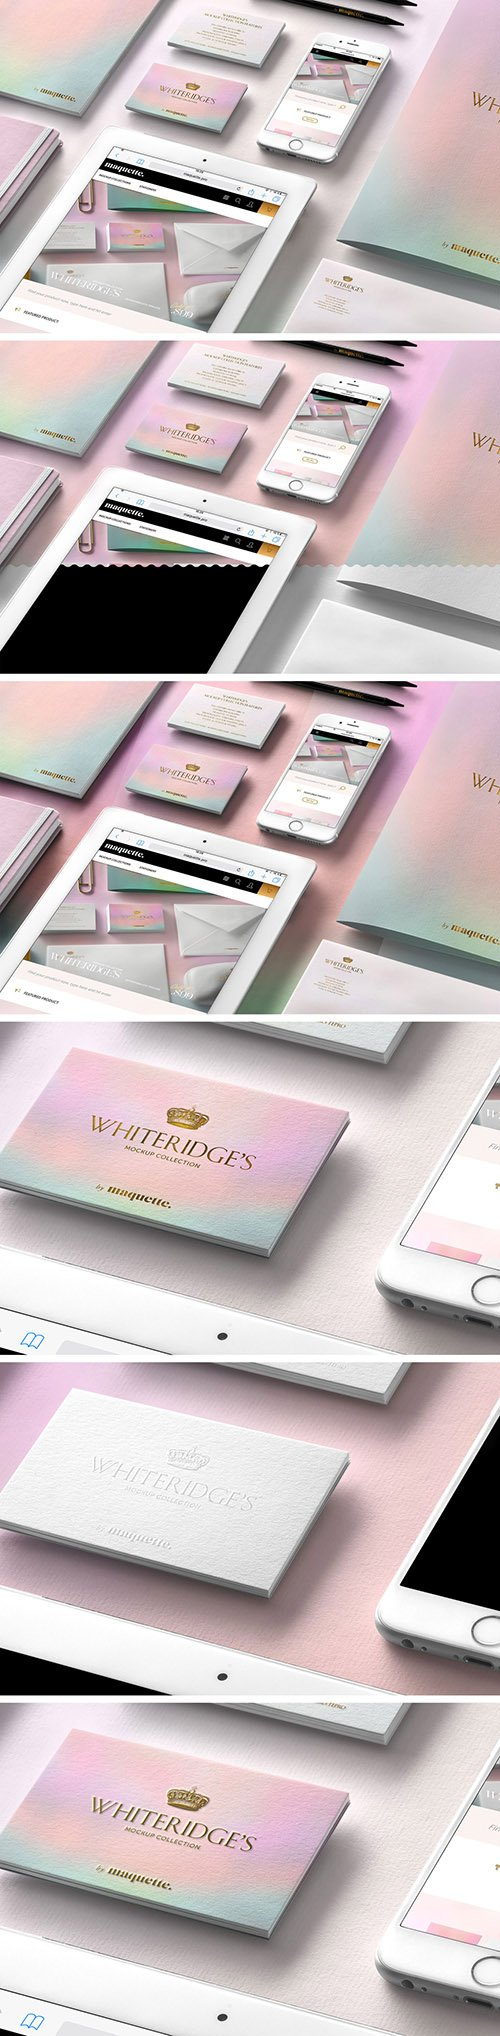 Luxury Gold-Embossed Corporate Stationery Mockup 10 130433161 PSDT